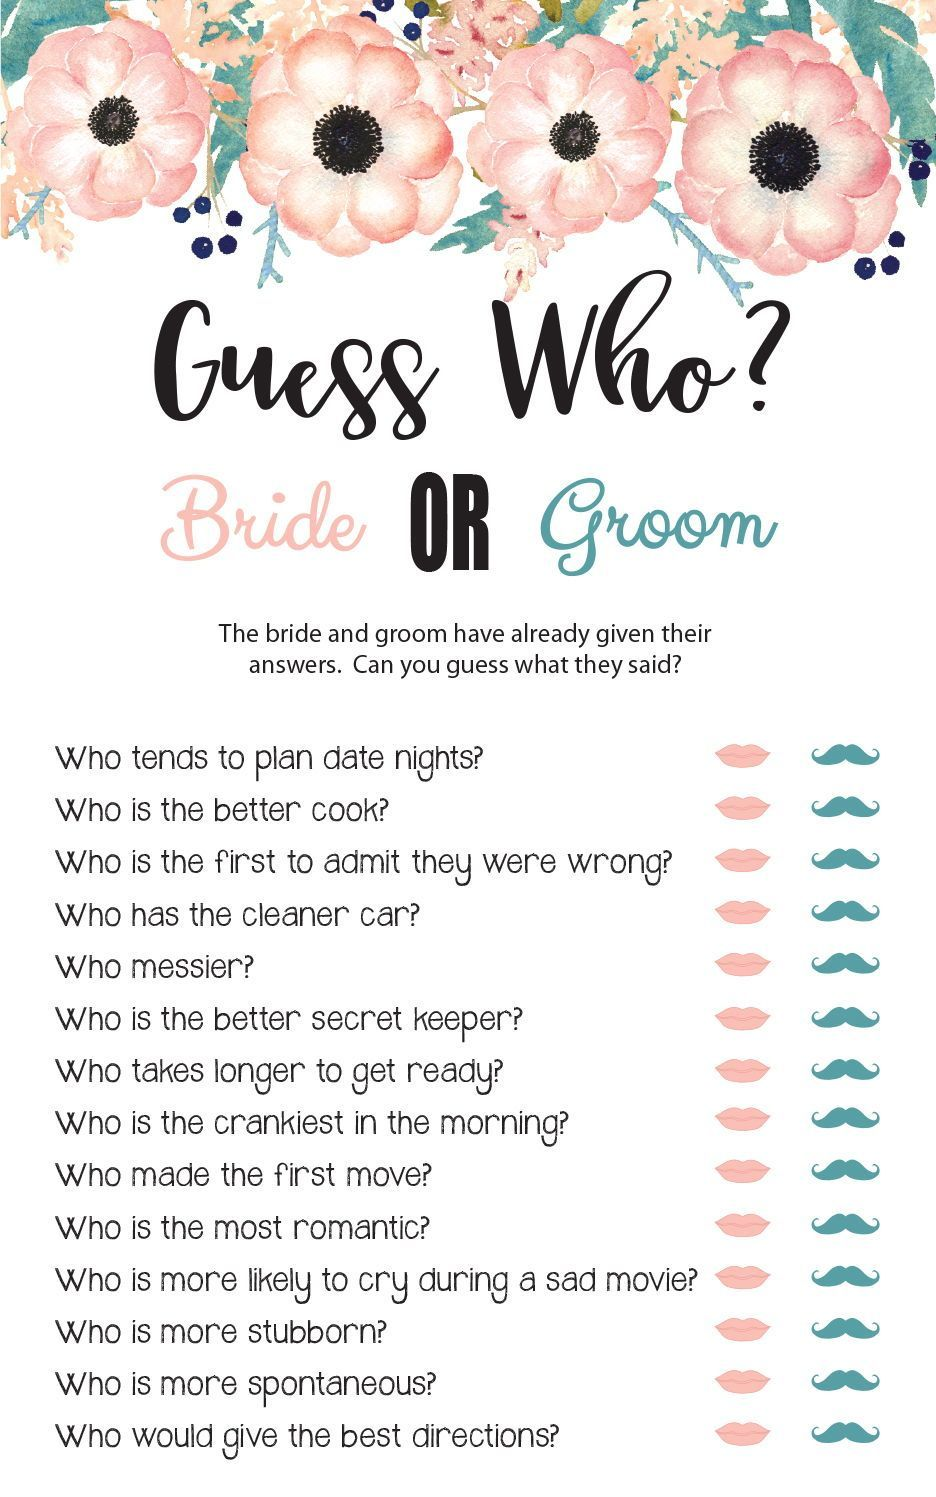 Guess Who Bridal Shower Game, Wedding Shower Games, Engagement Party Game, Floral Theme, Printable, Couples Shower Games, D1734 -   - #BachelorParties #BachelorettePartyGames #BachelorettePartyideas #Bridal #Couples #D1734 #engagement #floral #Game #games #guess #party #printable #shower #Theme #wedding